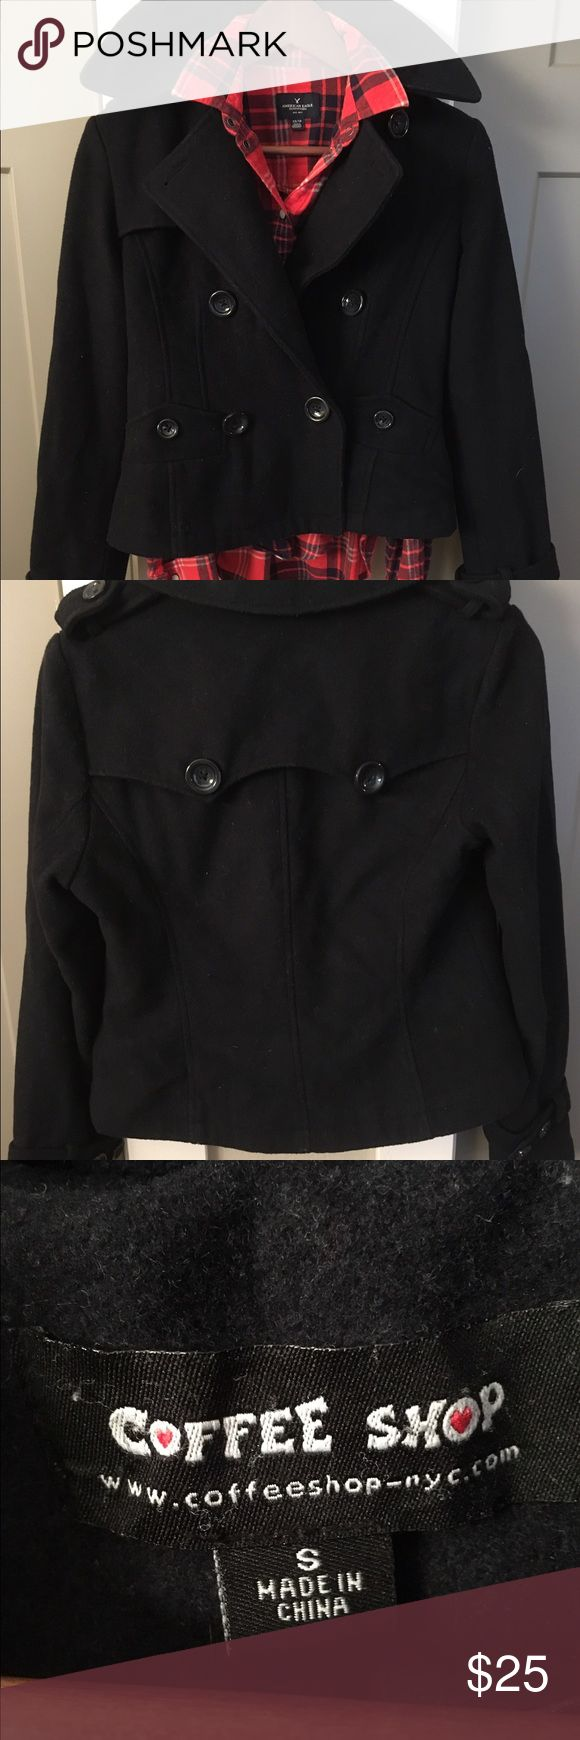 Coffee Shop brand navy pea coat Coffee Shop pea coat. This is a dark navy. Almost looks black. Great condition. All buttons in tact. Please feel free to ask any question. CoffeeShop Jackets & Coats Pea Coats